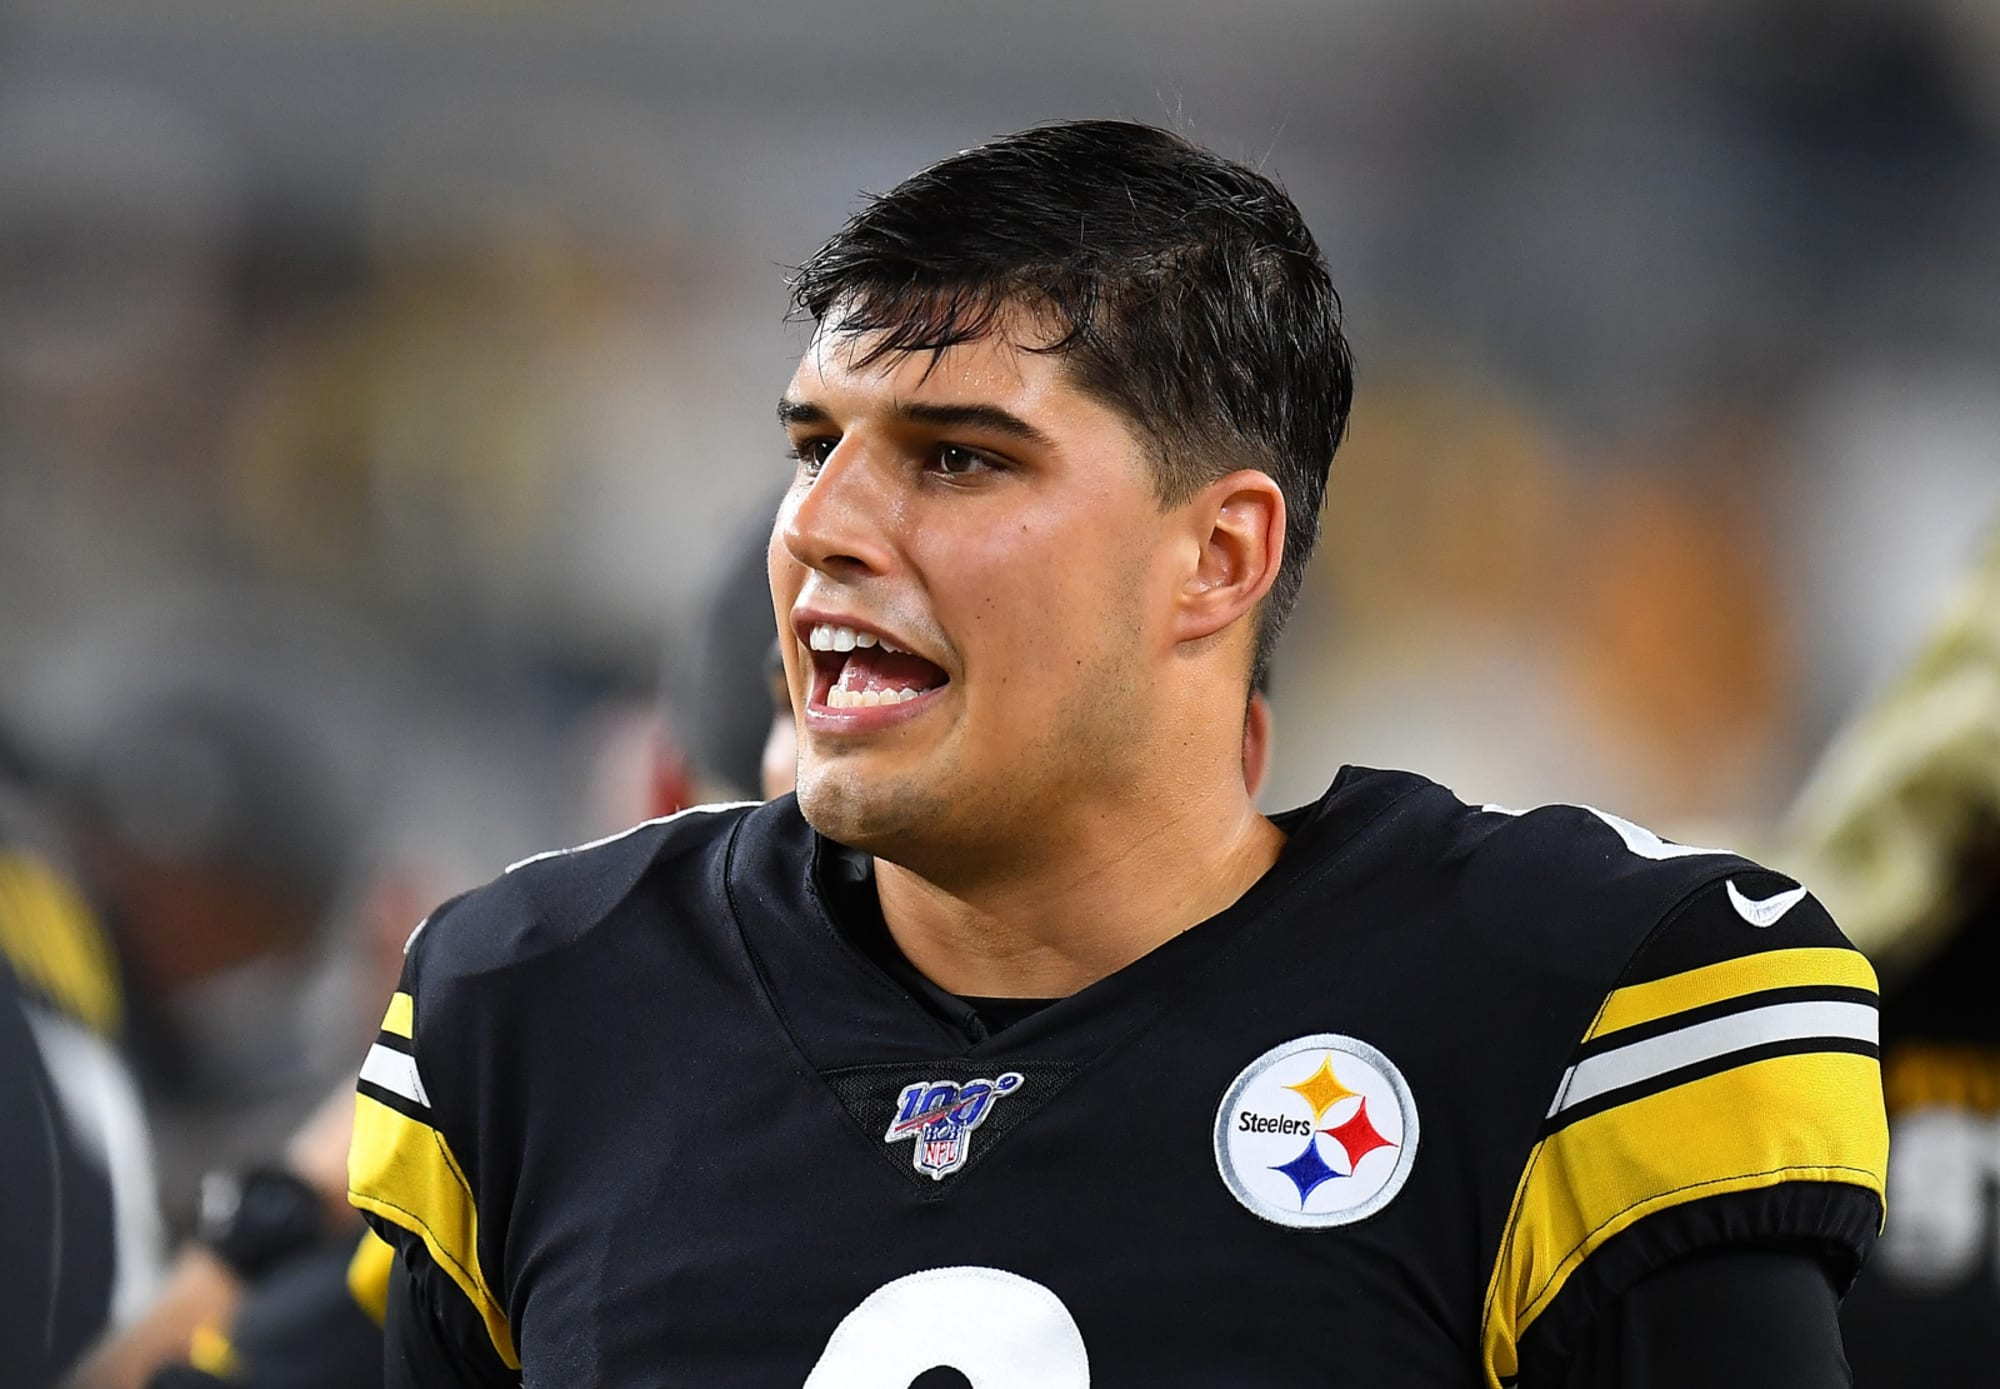 Steelers Qb Mason Rudolph Apologizes For Involvement In Late Game Brawl